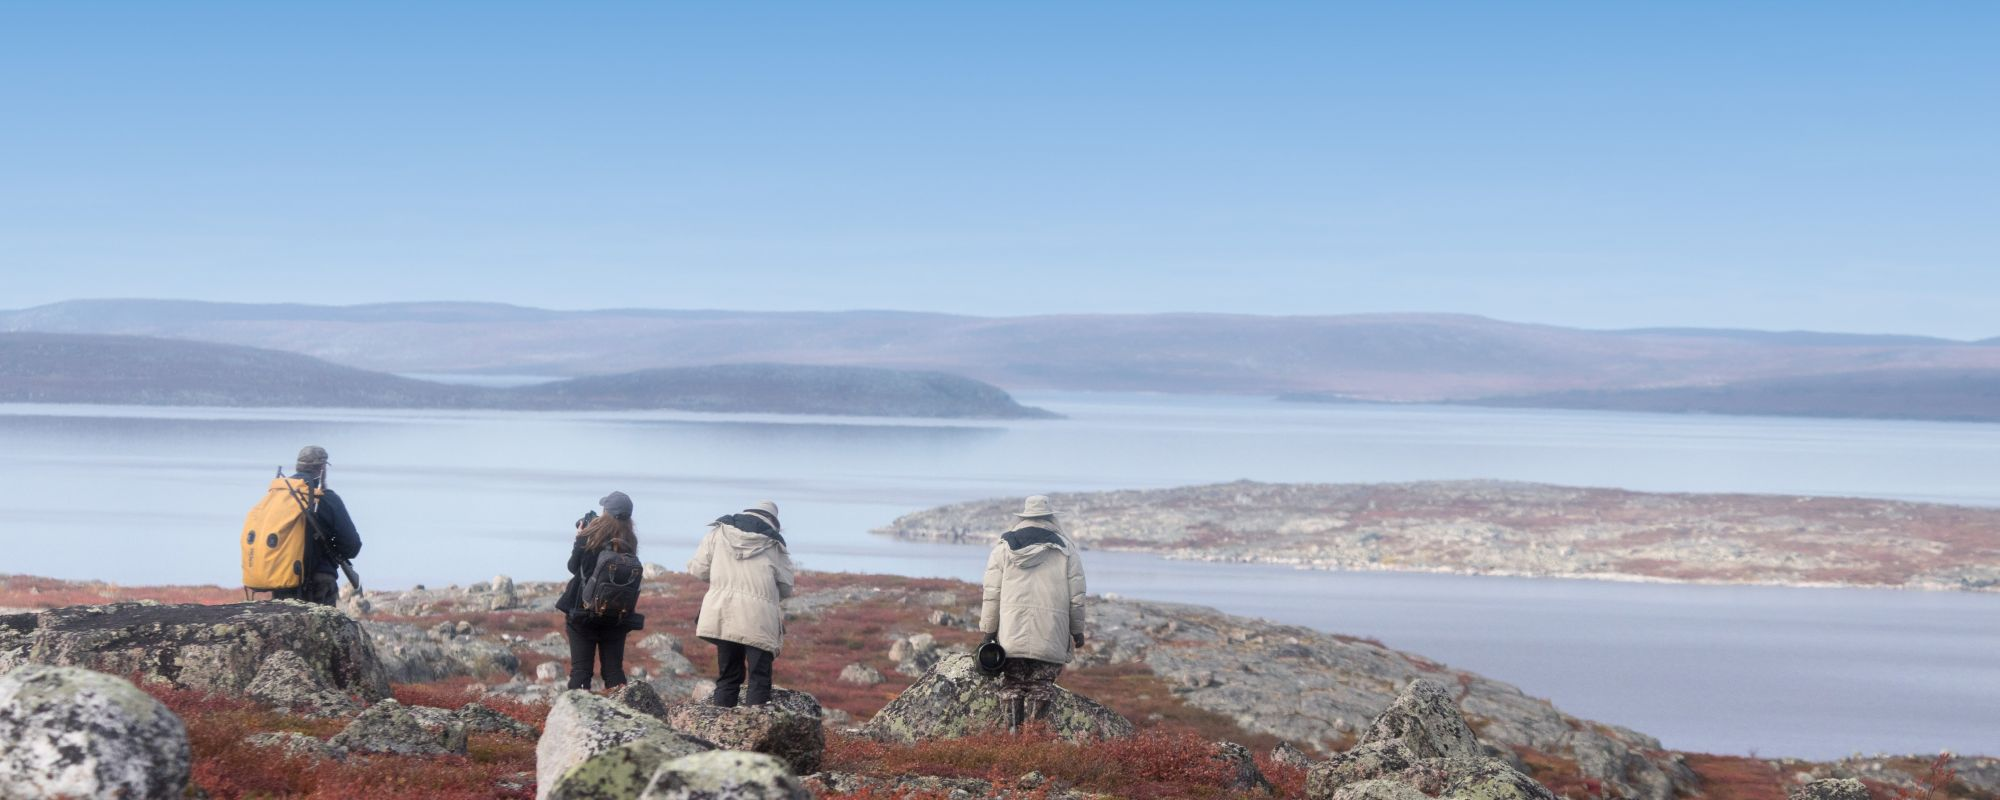 Group of people walking on hill top scenic view of a lake and barrenlands